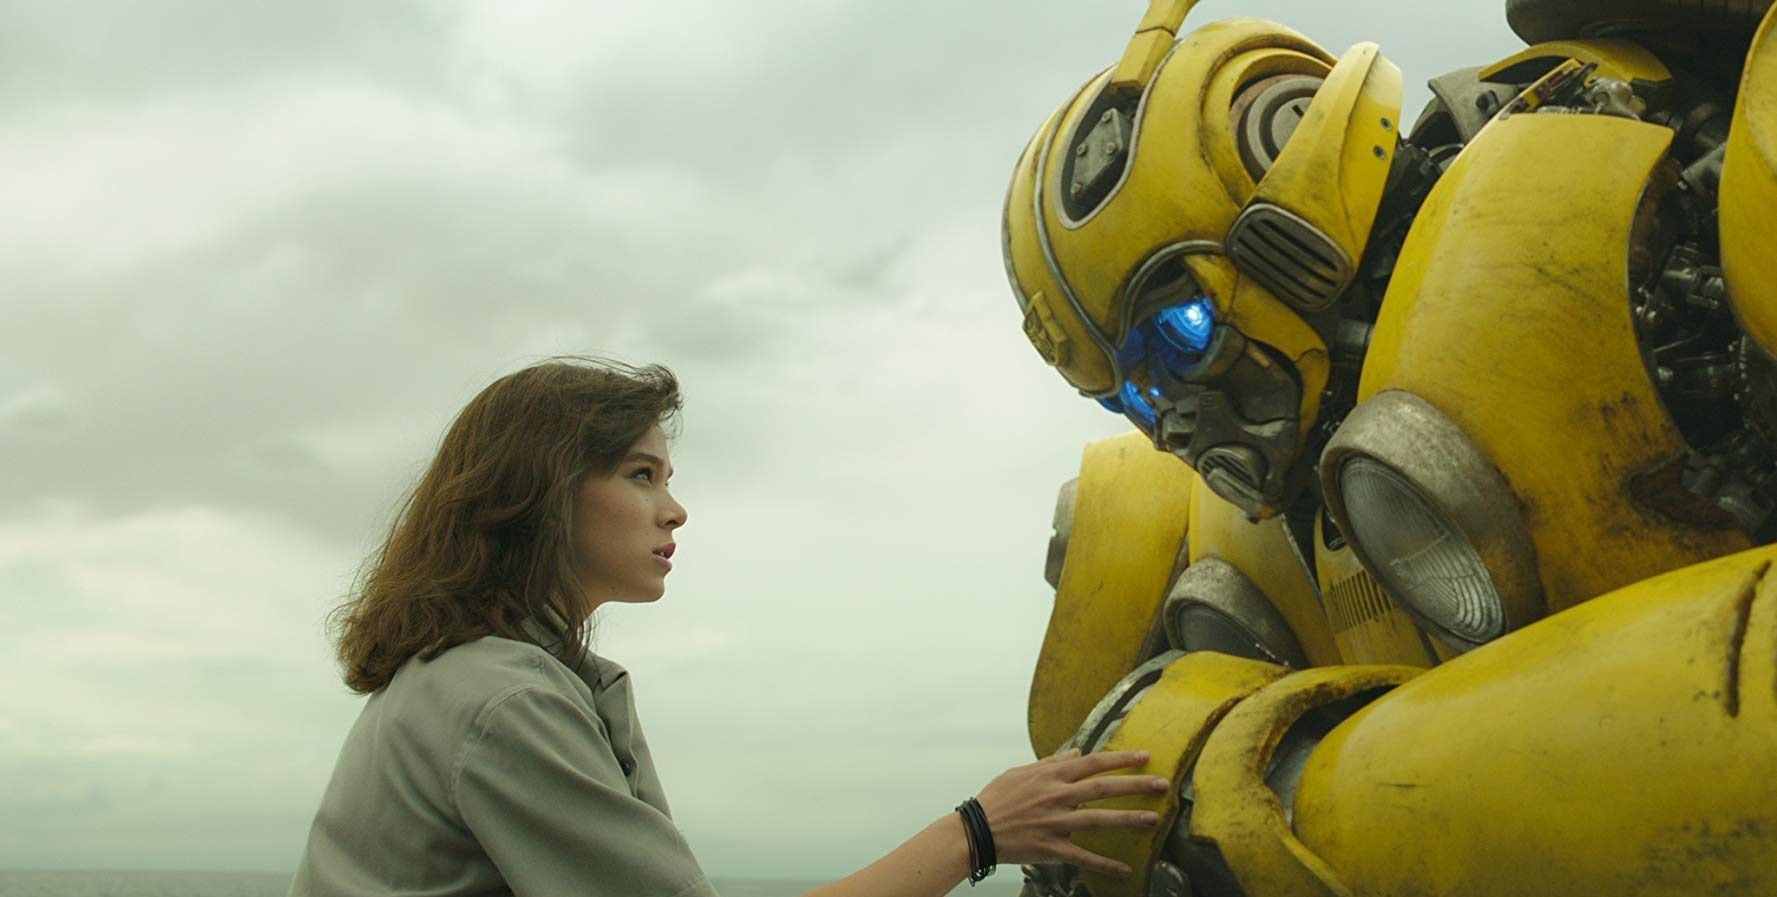 'Bumblebee' Review: 'Bumblebee' Finally Gives the 'Transformers' Franchise A Beating Robotic Heart